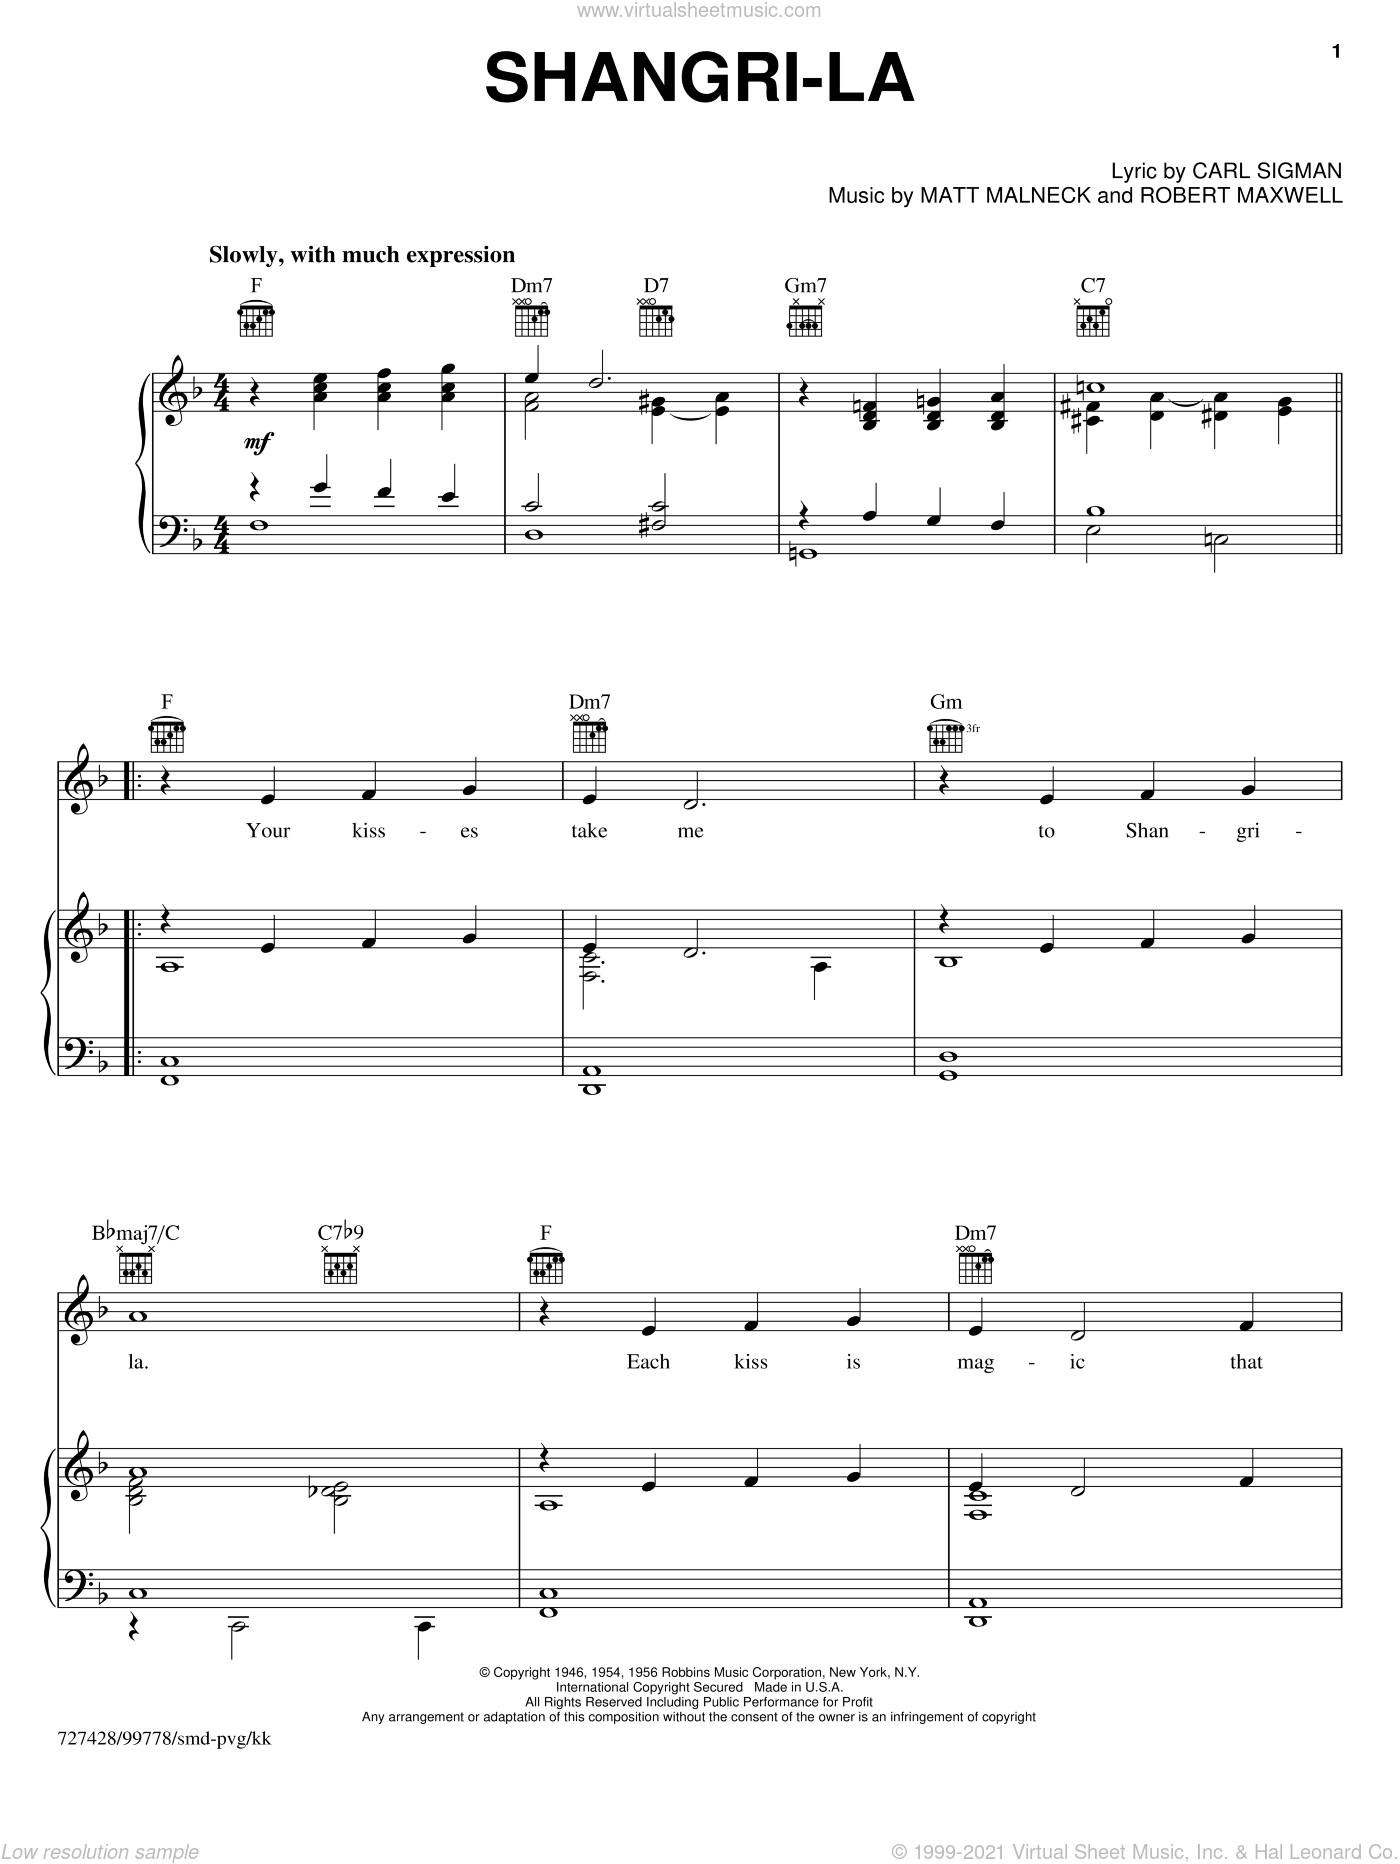 Shangri-la sheet music for voice, piano or guitar by Matt Malneck